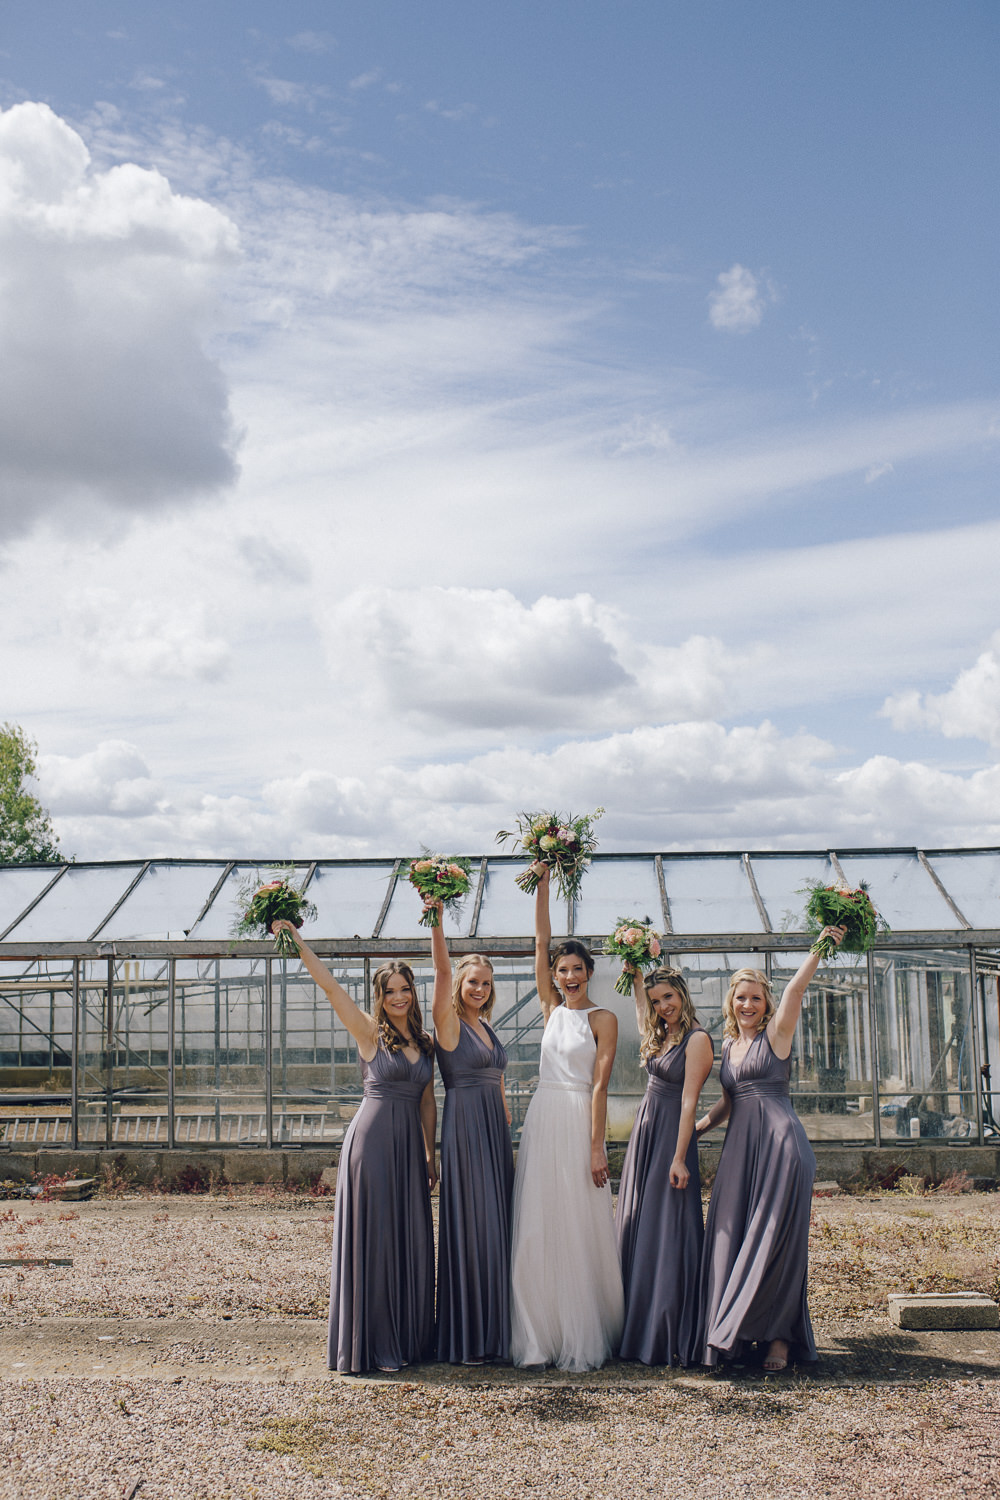 Bridesmaids Bridesmaid Dress Dresses Pewter Grey Maxi Bouquets Deer Park Hall Wedding Curious Rose Photography